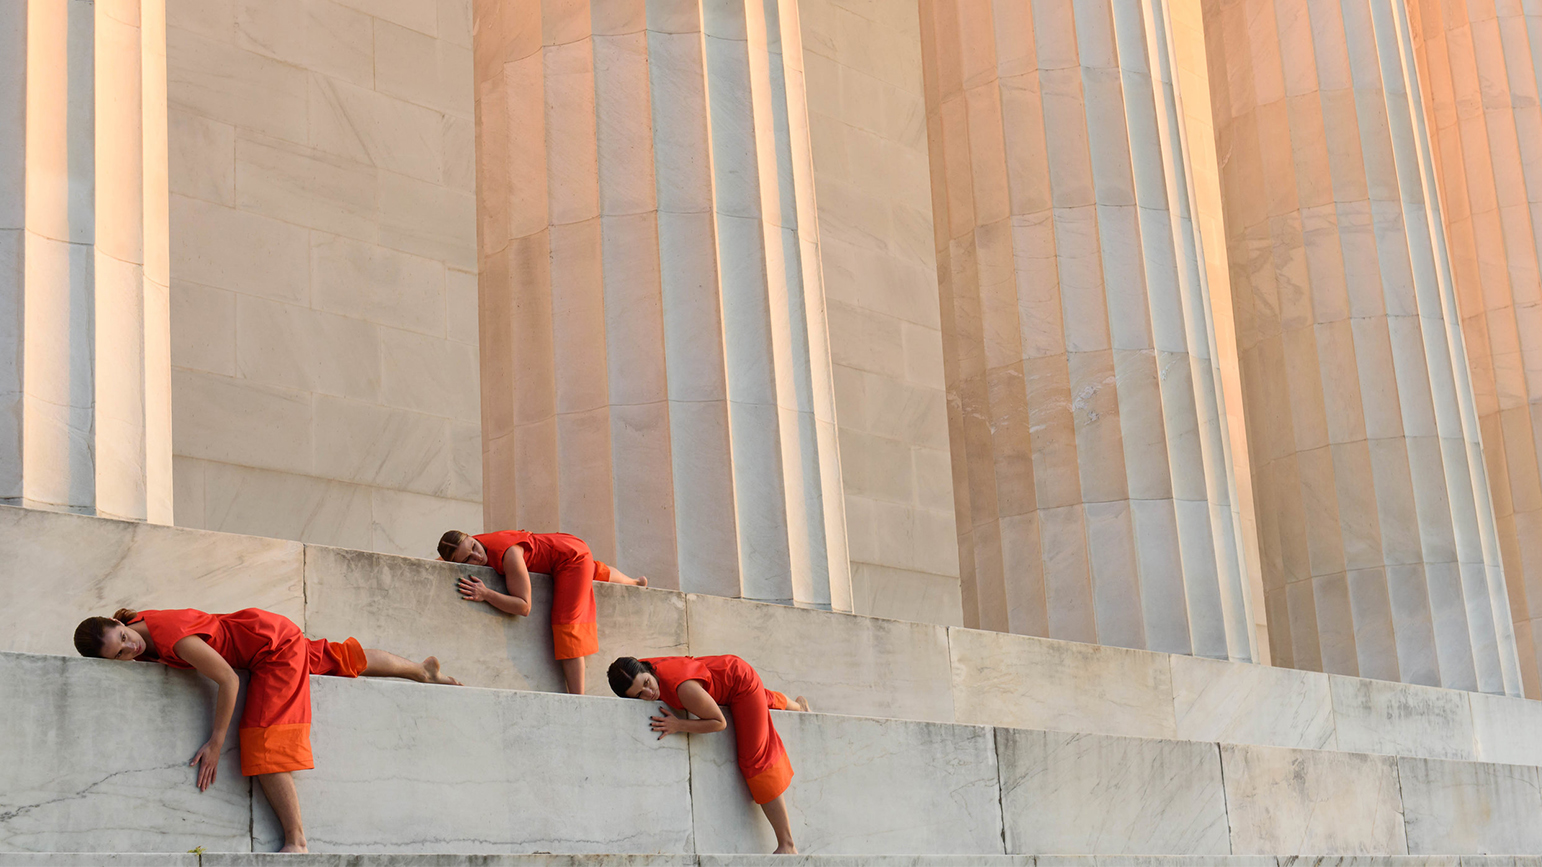 Women in orange jumpers lying on steps in front of a colonnade